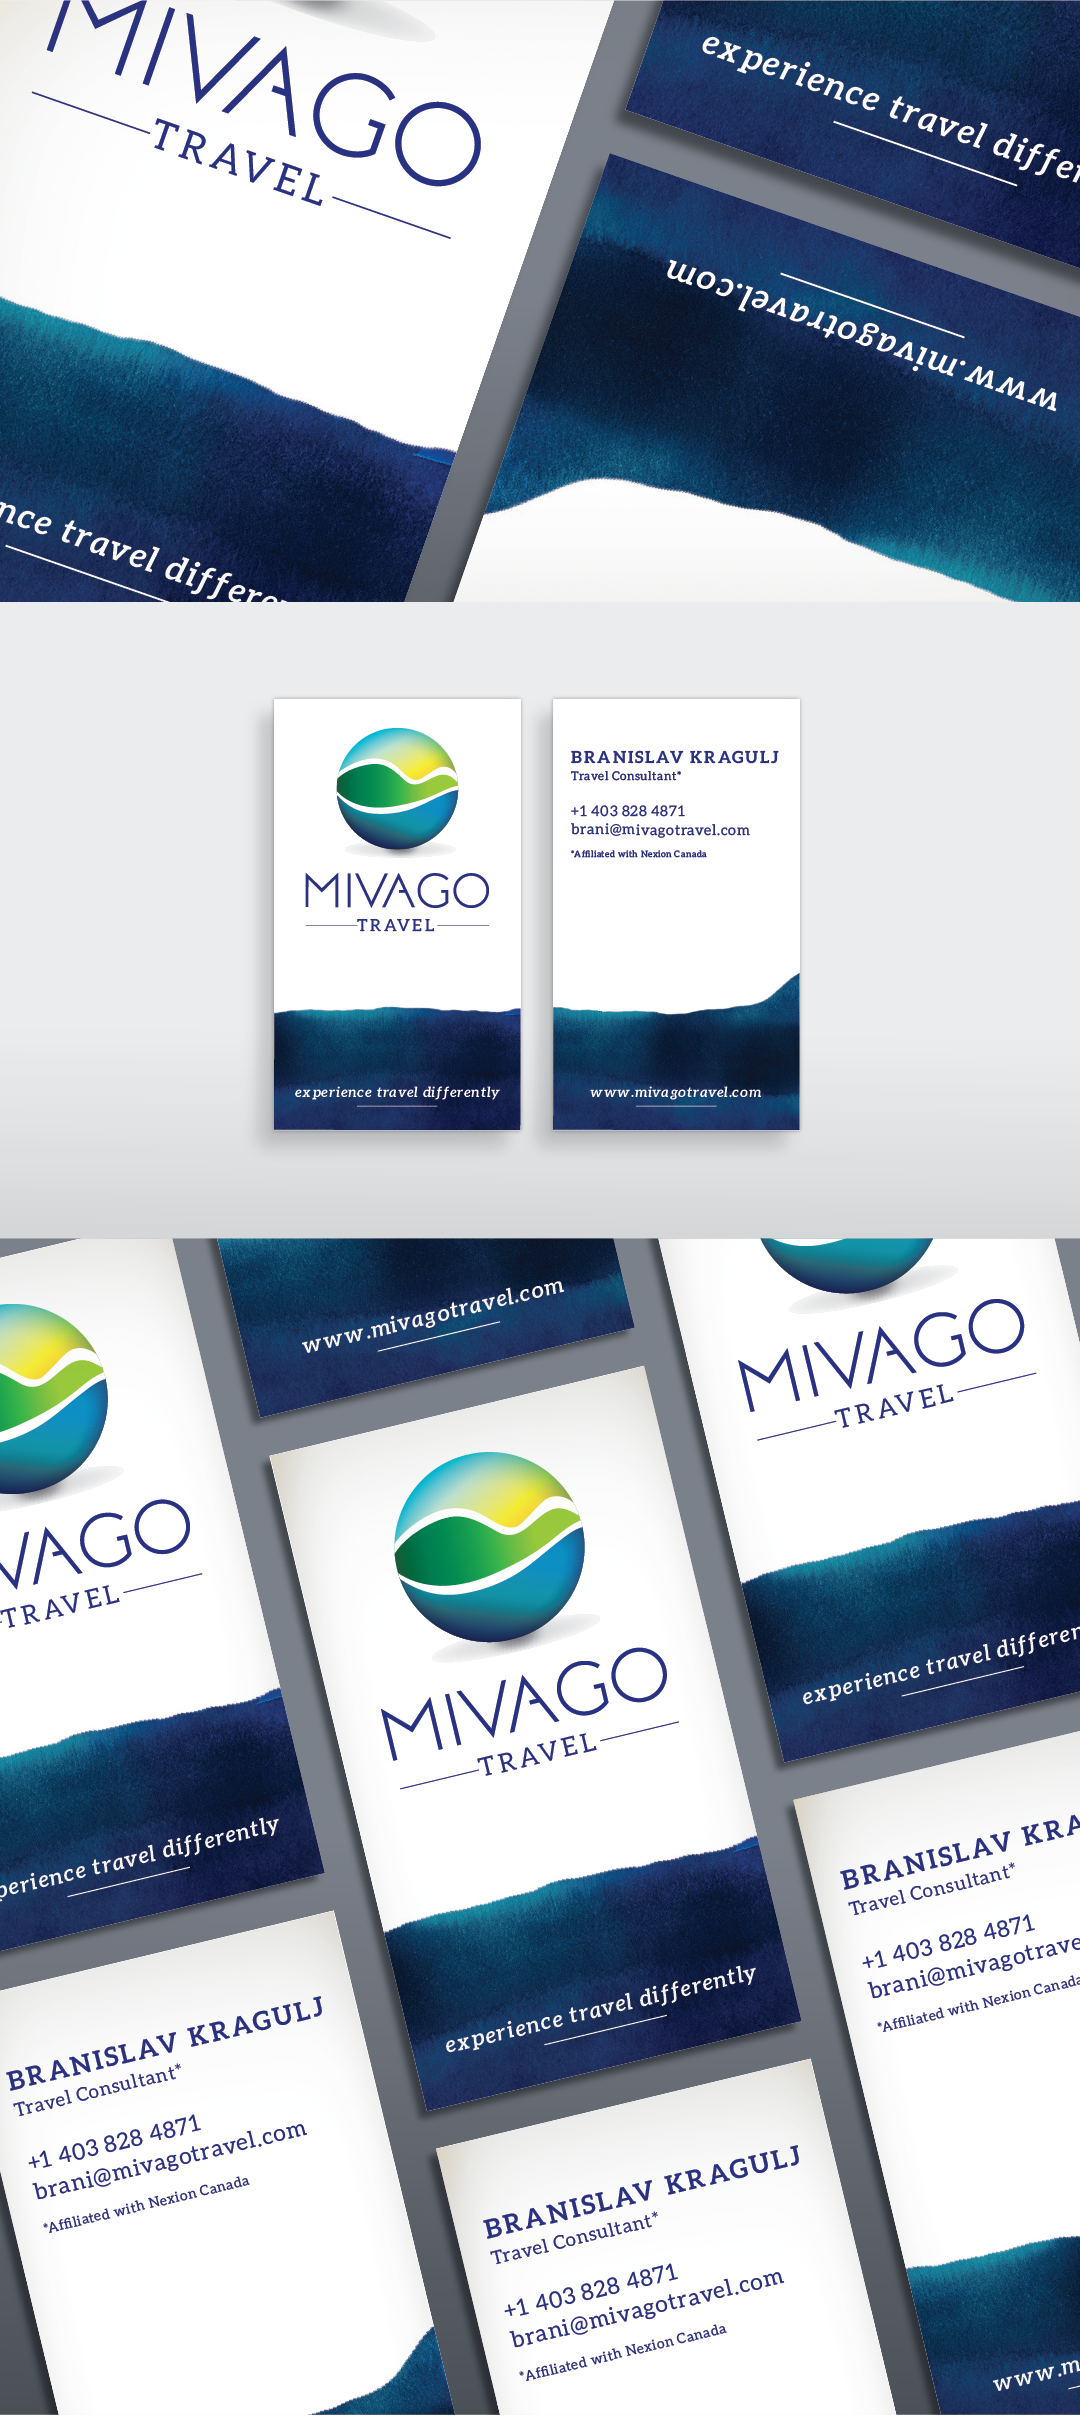 Mivago Travel